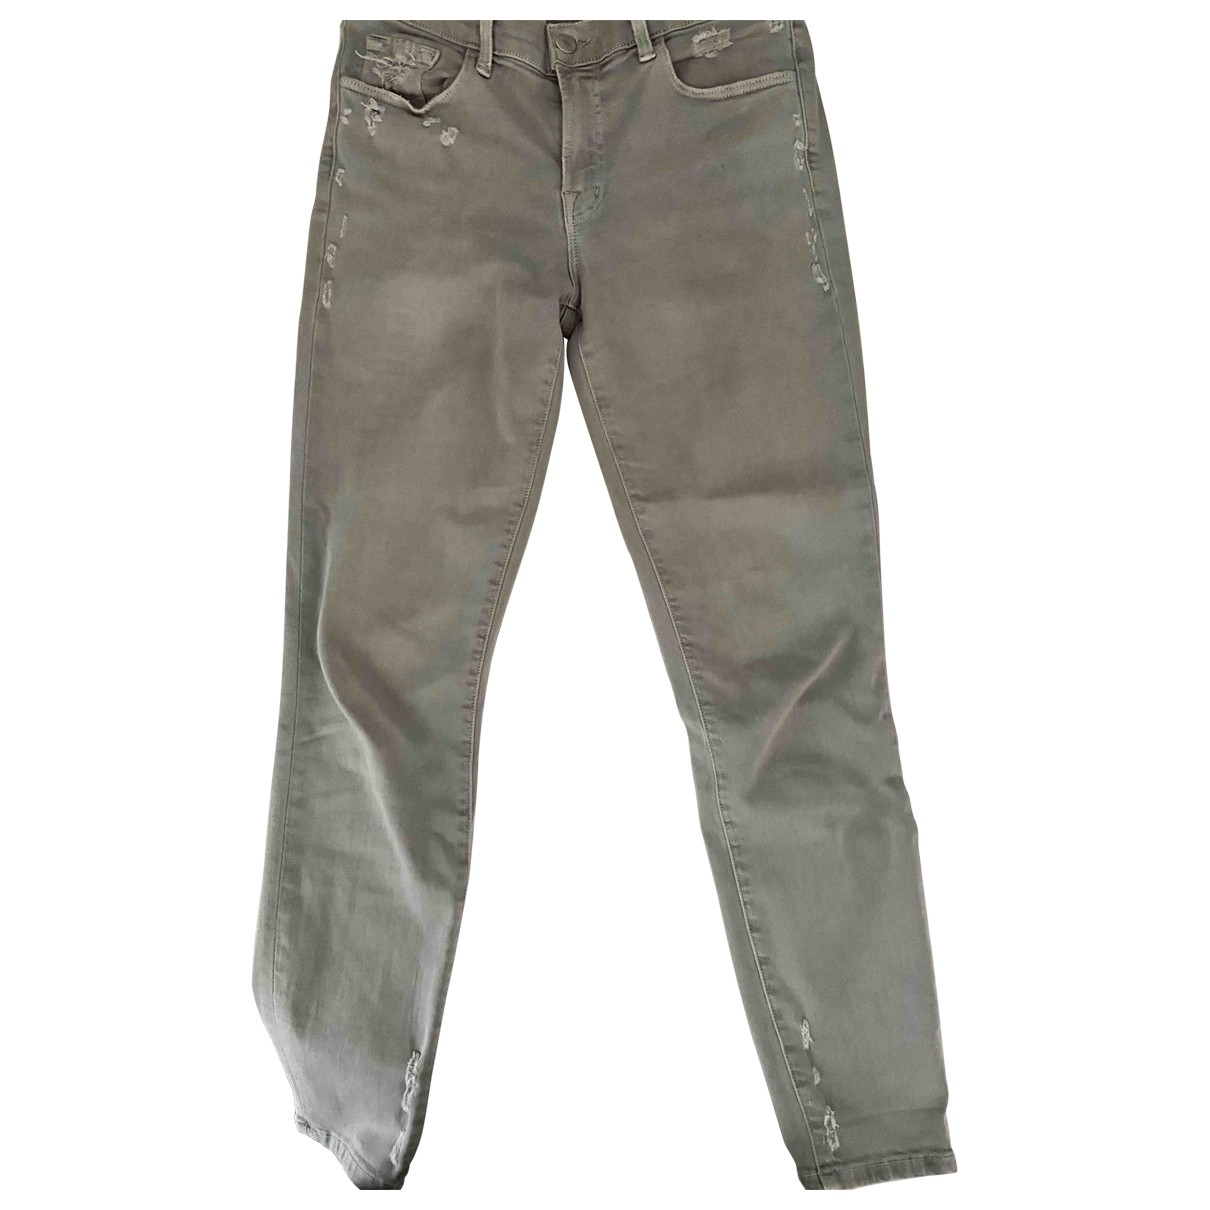 J Brand \N Grey Denim - Jeans Jeans for Women 27 US